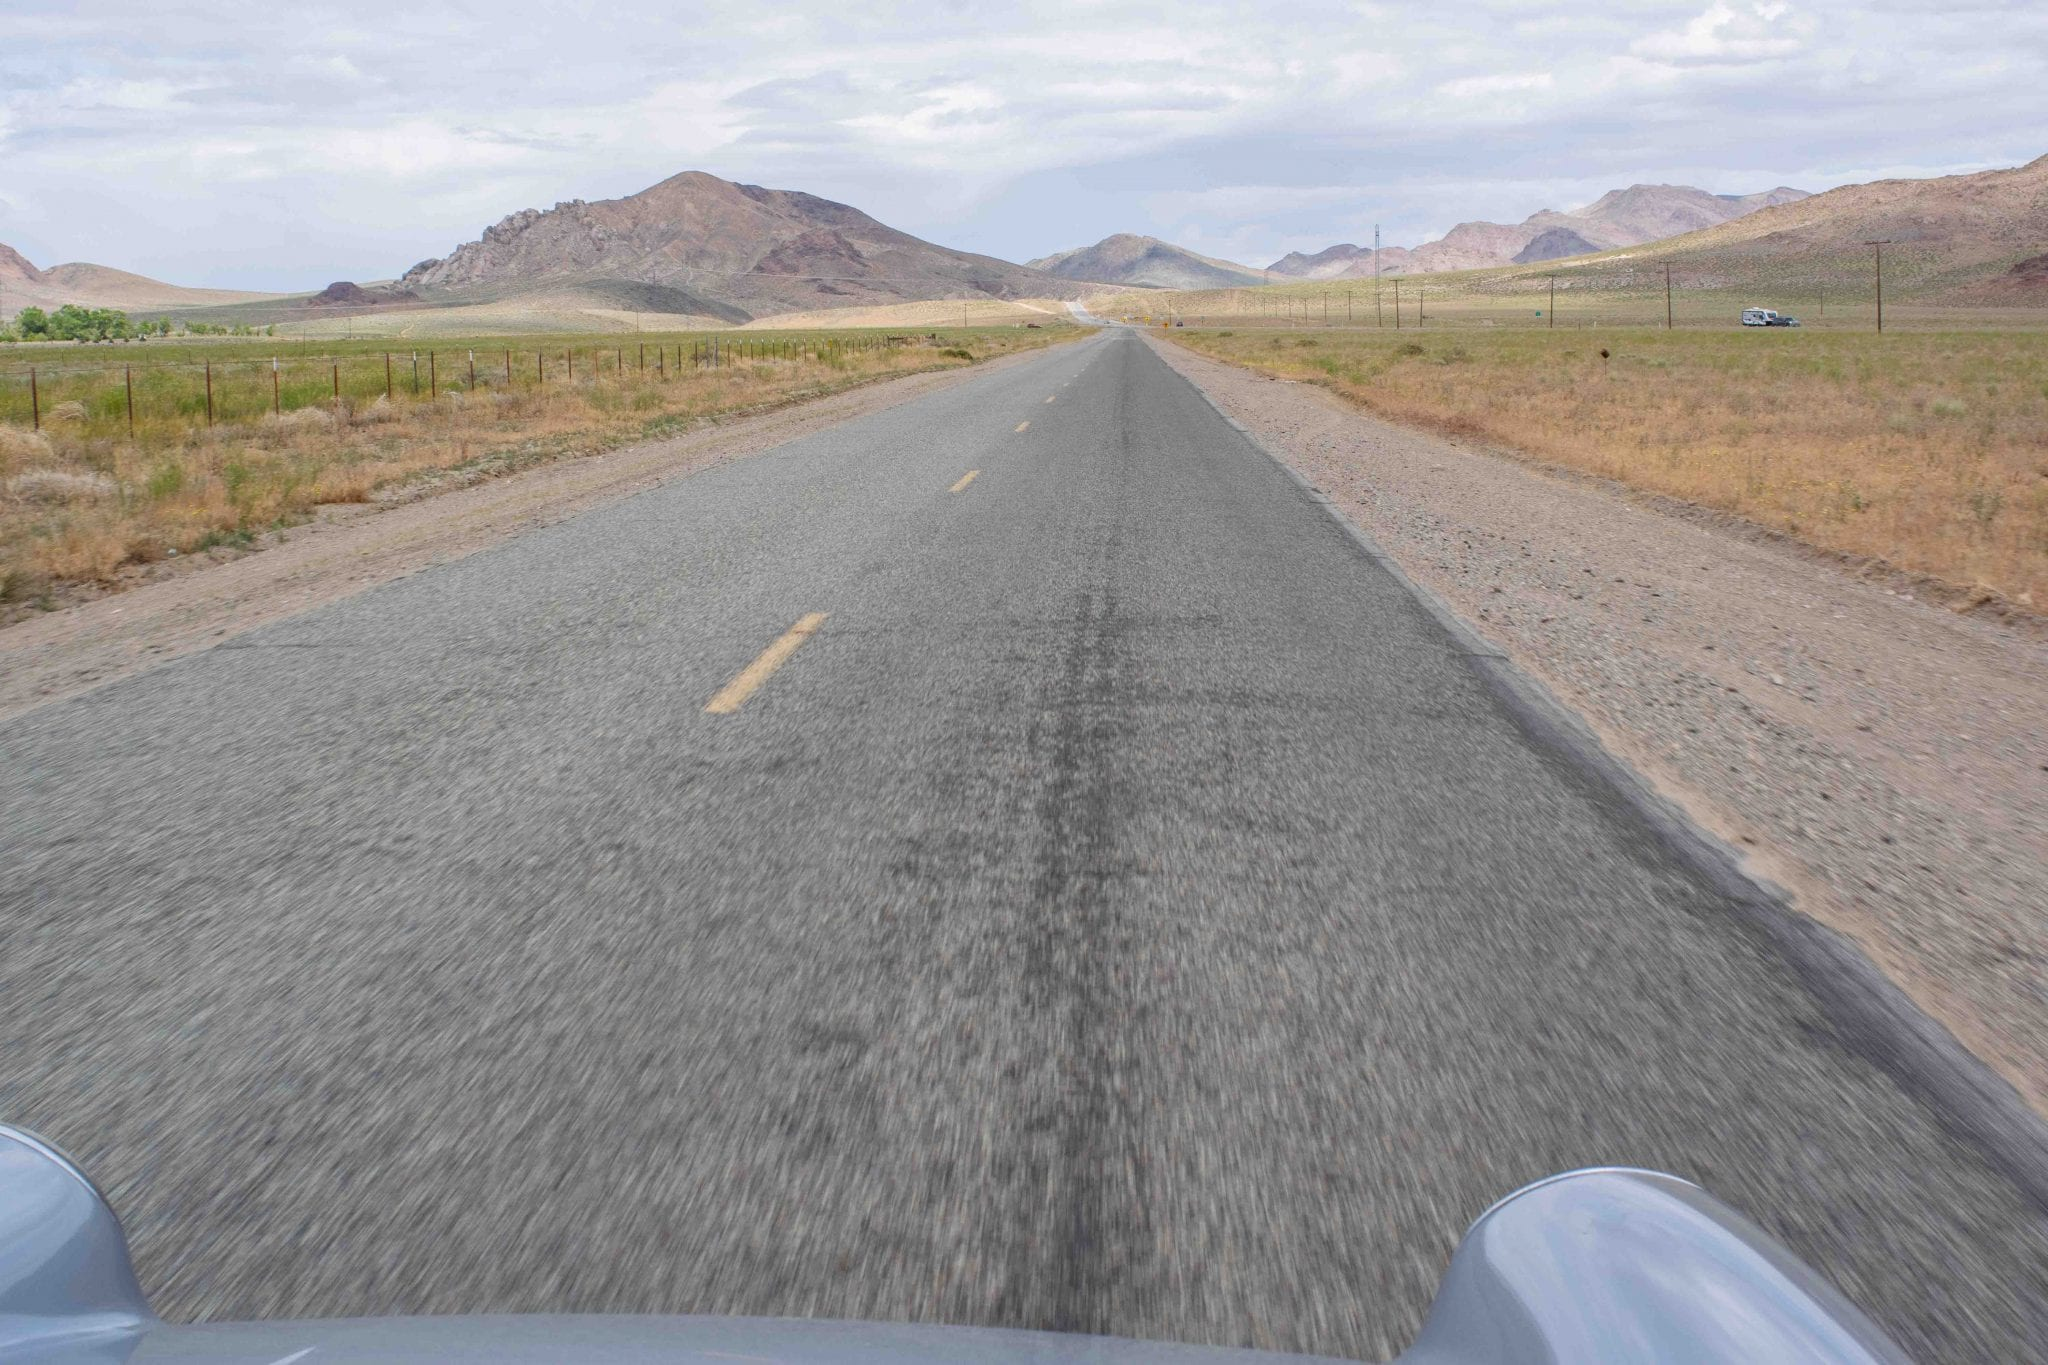 A two lane back road stretches off in the distance towards sandy desert mountains